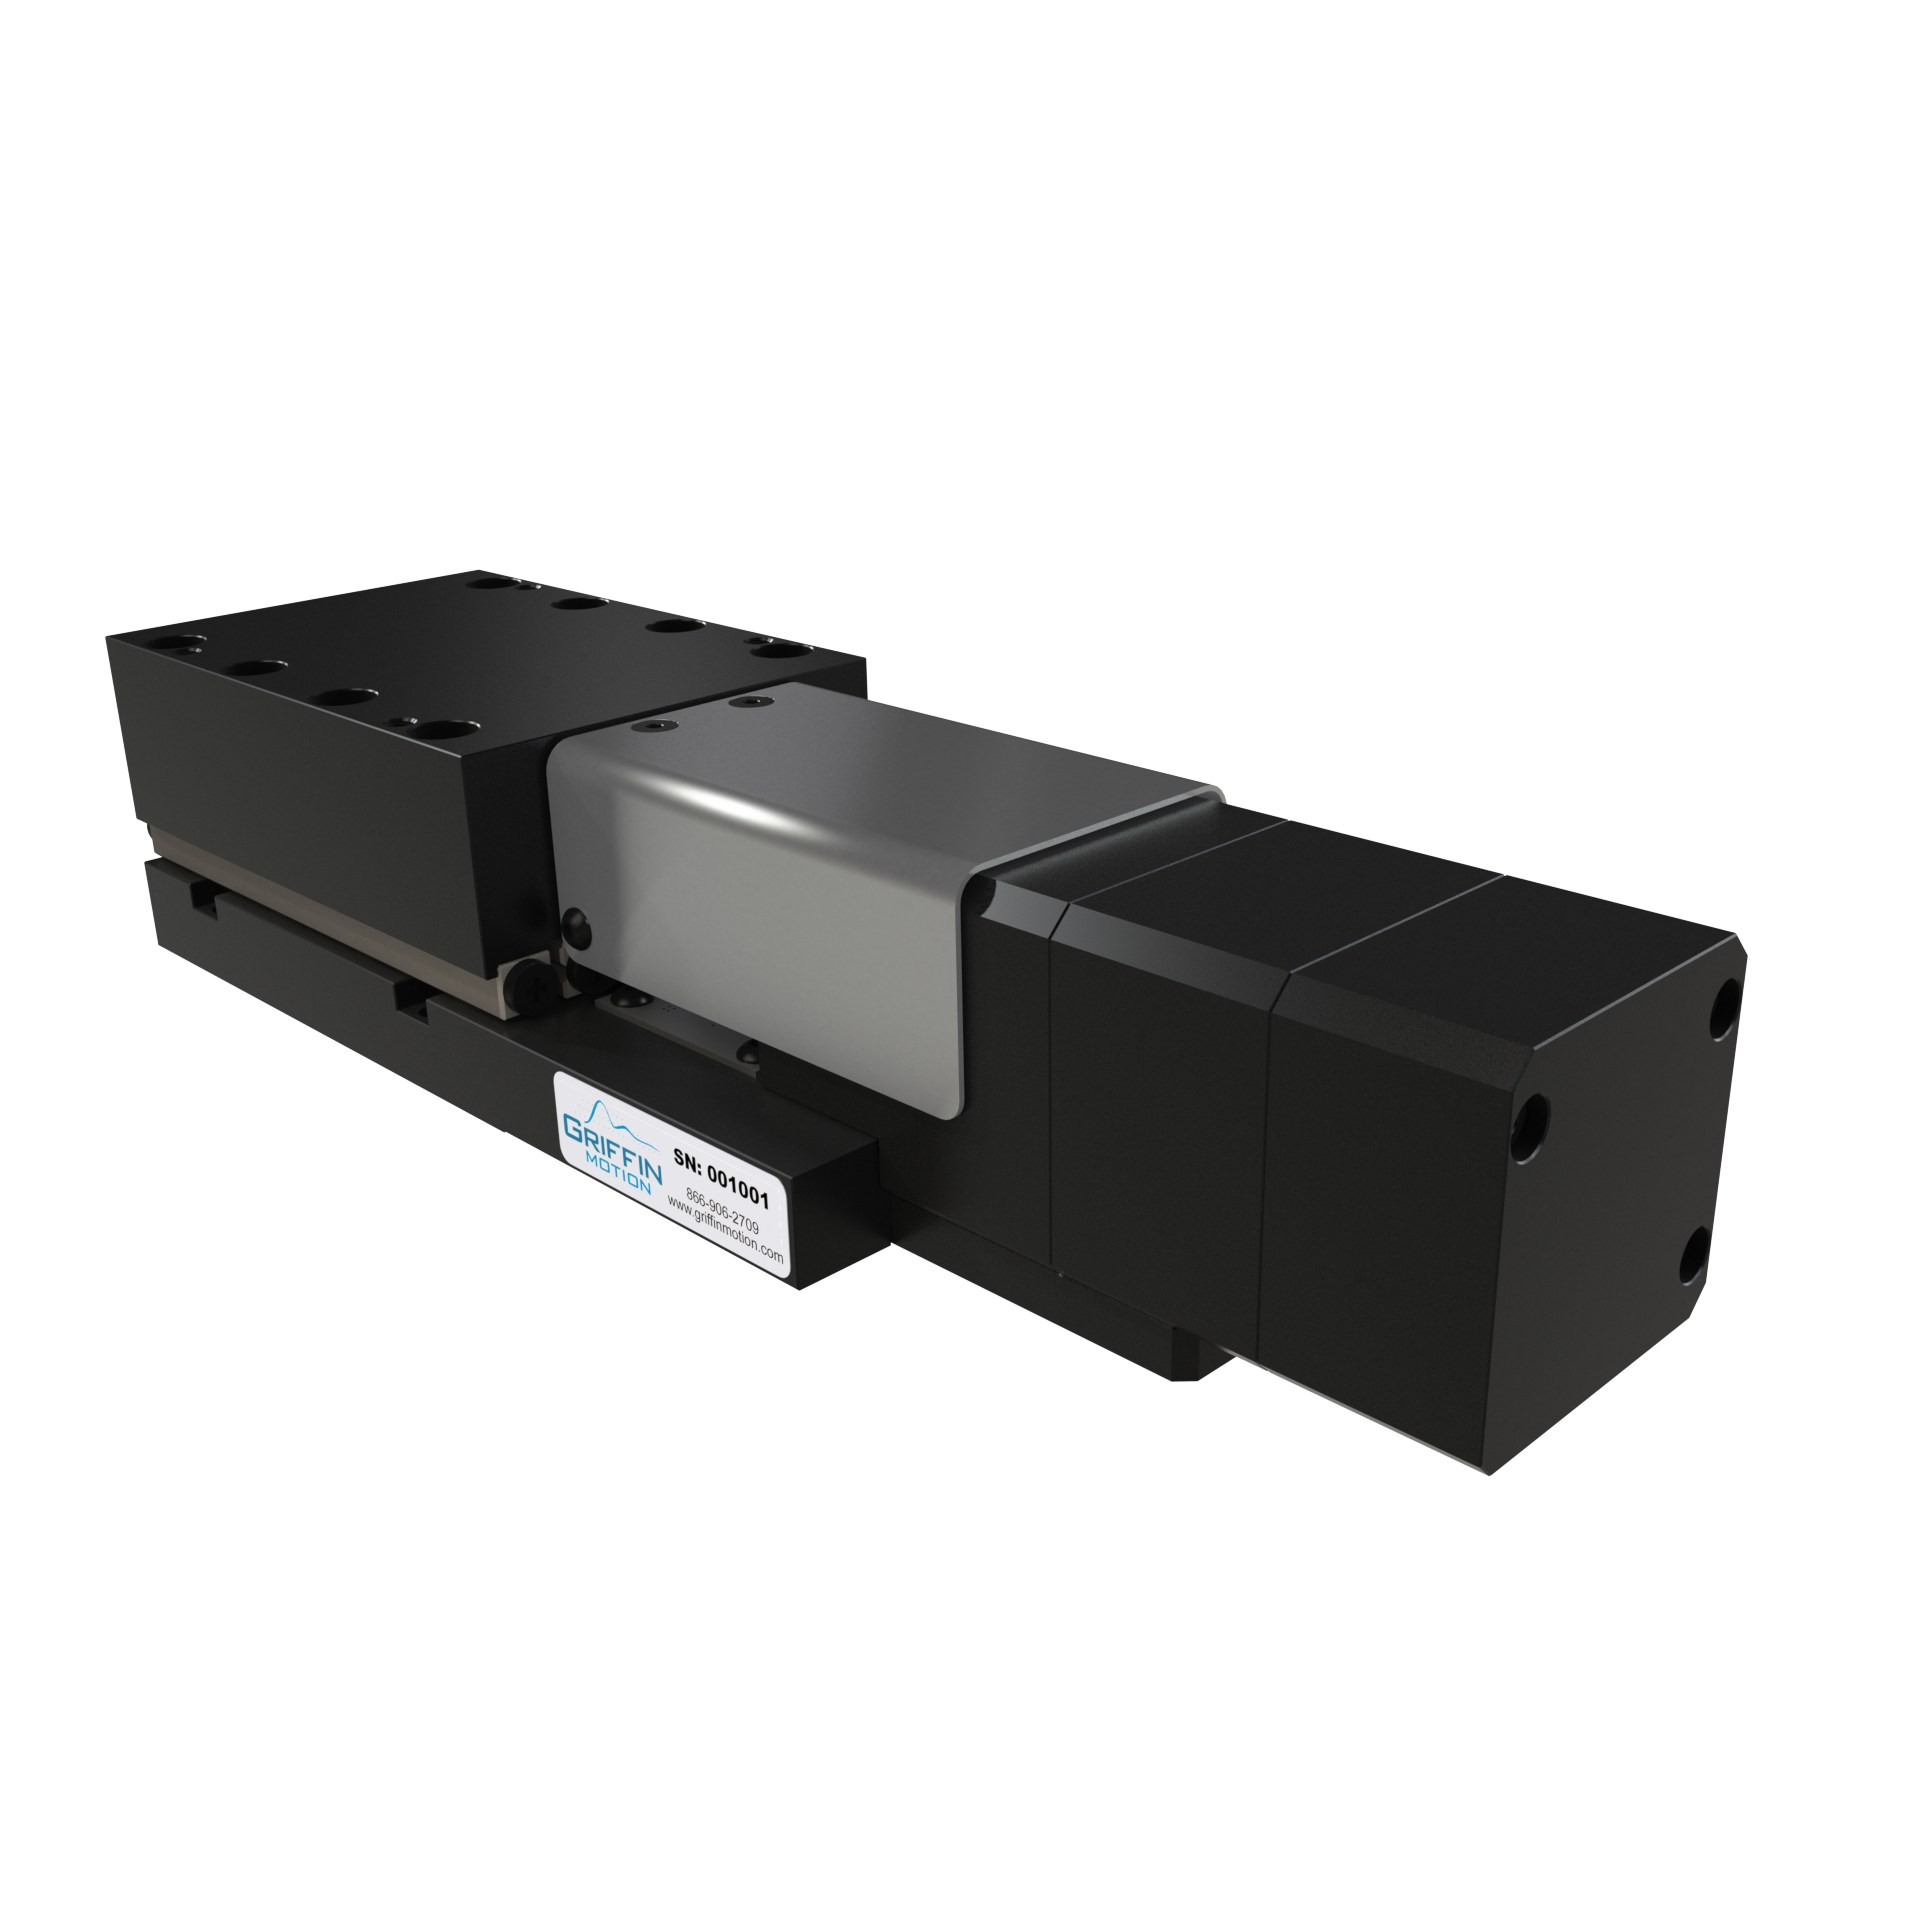 Compact, high accuracy linear stage with brake for vertical positioning